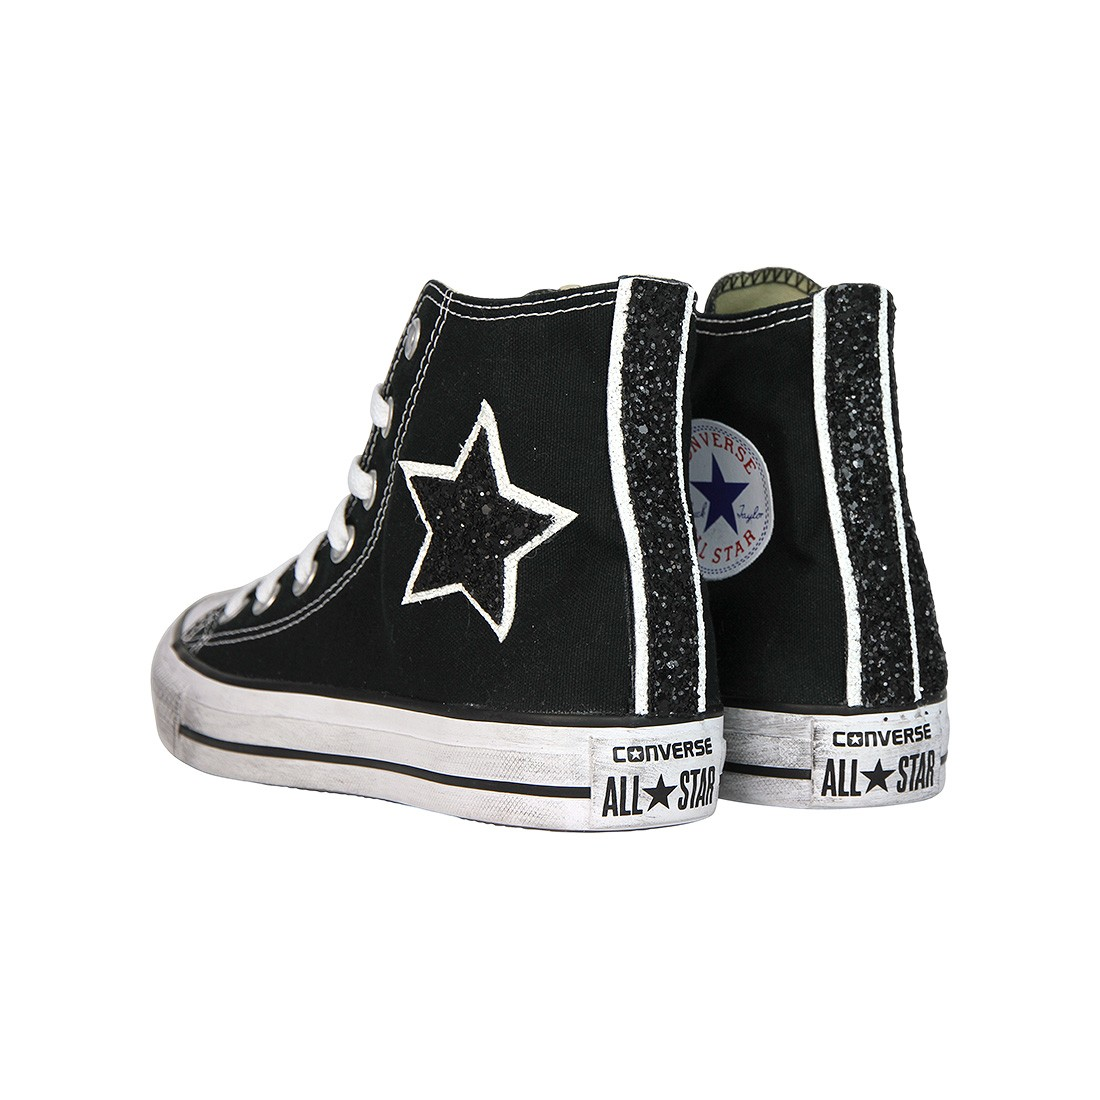 6a2978fcf4 ... all star light collection pantofole estate da avril lavigne canvas  7brszeih 16b9c 8ba67; norway converse hi nero scritta super girl glitter  nerobianco ...